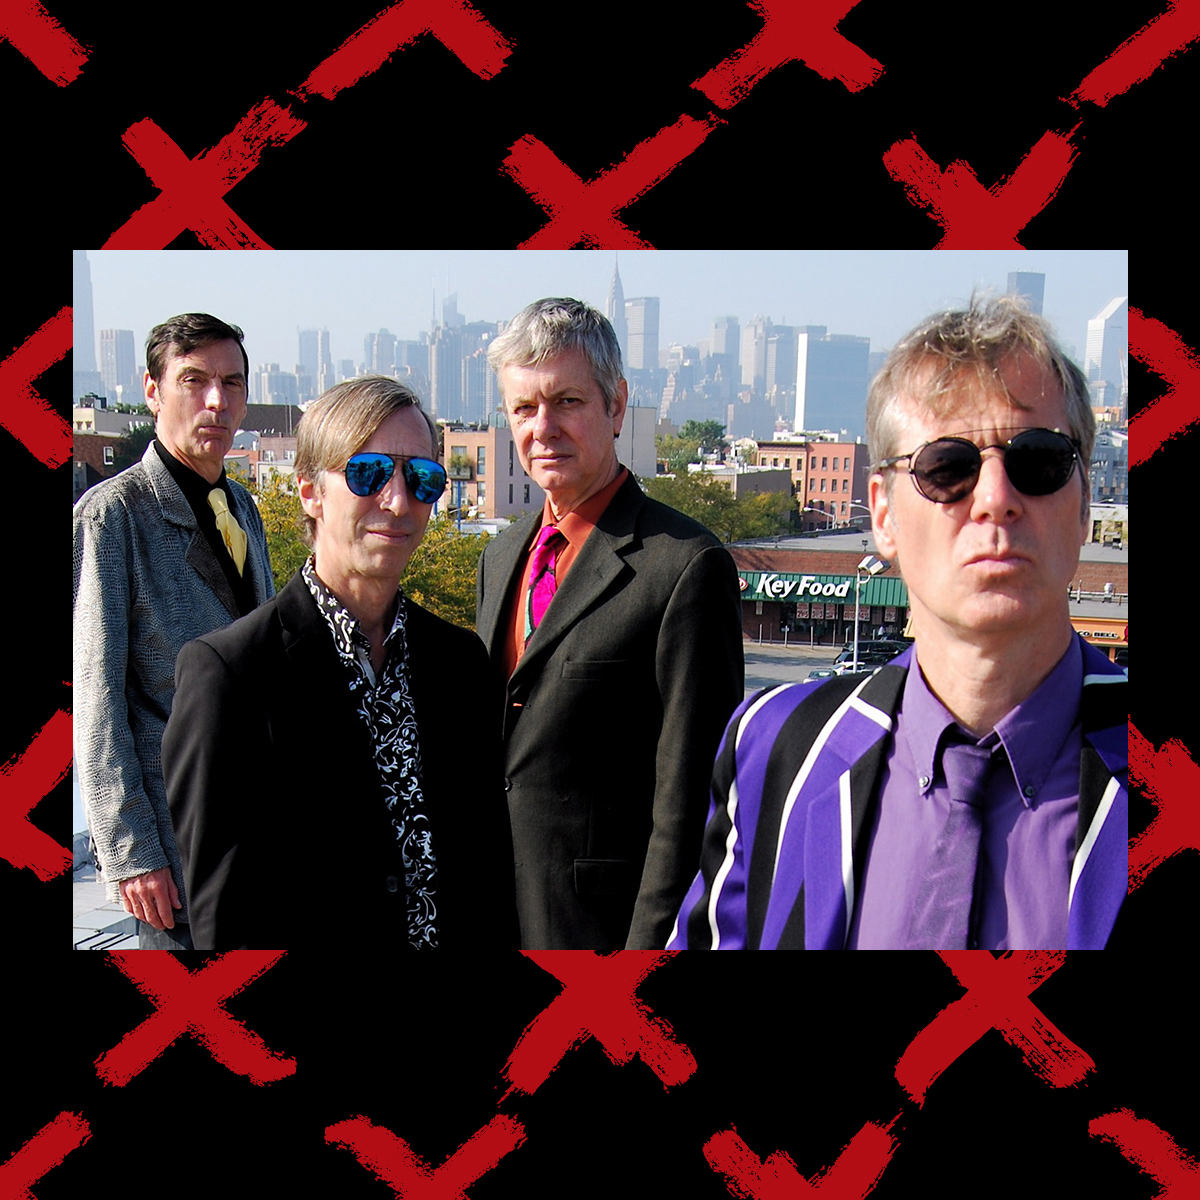 The fleshtones instagram